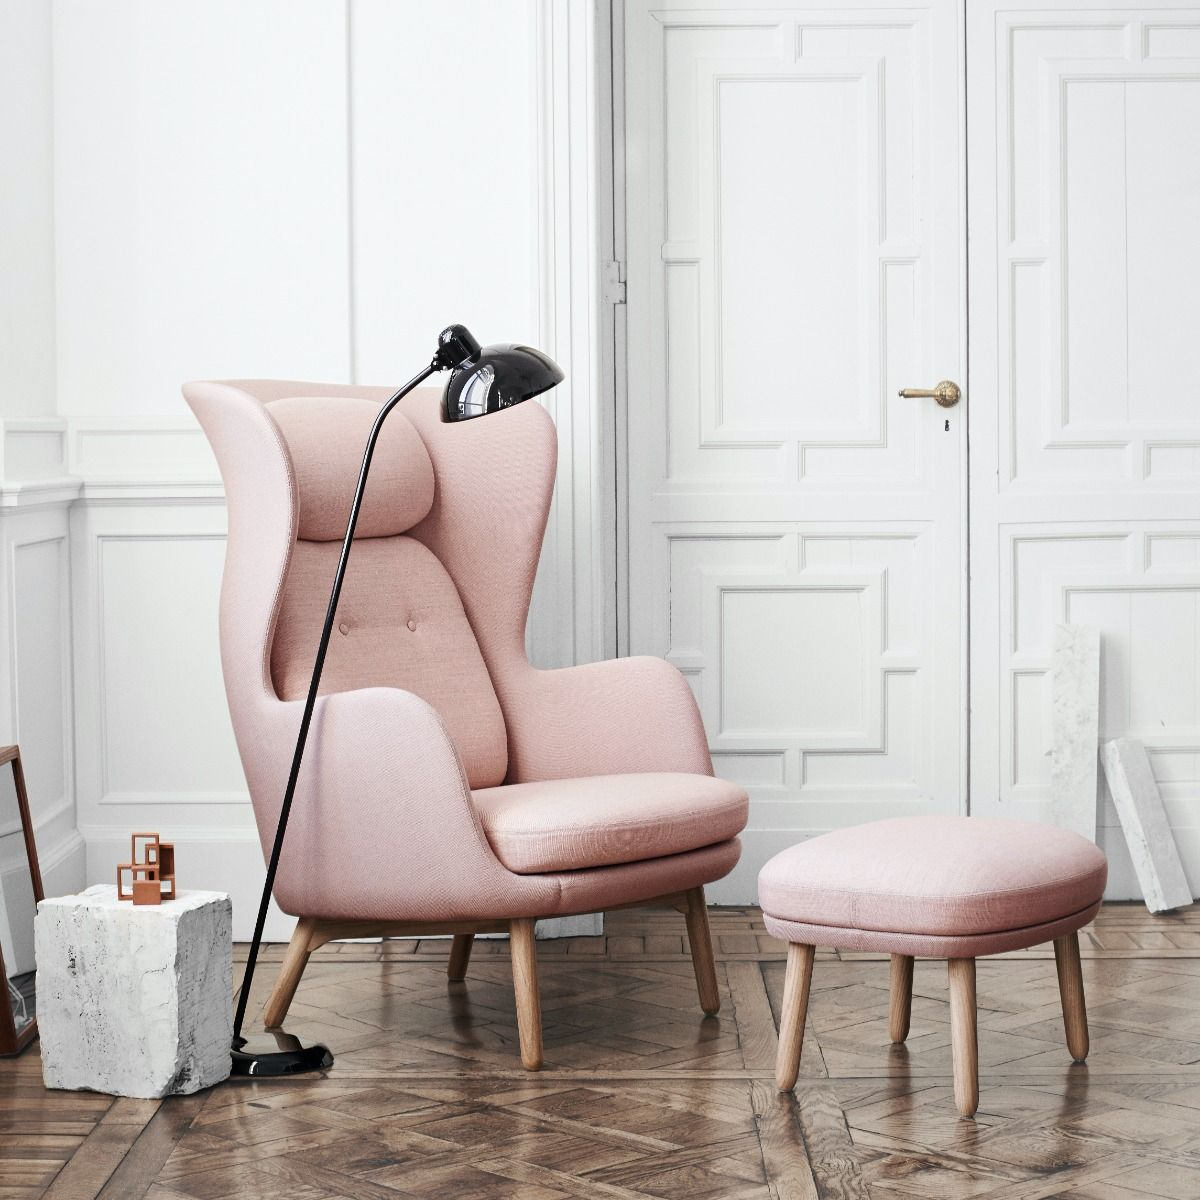 Fritz Hansen Ro Easy chair with foot stool in pink